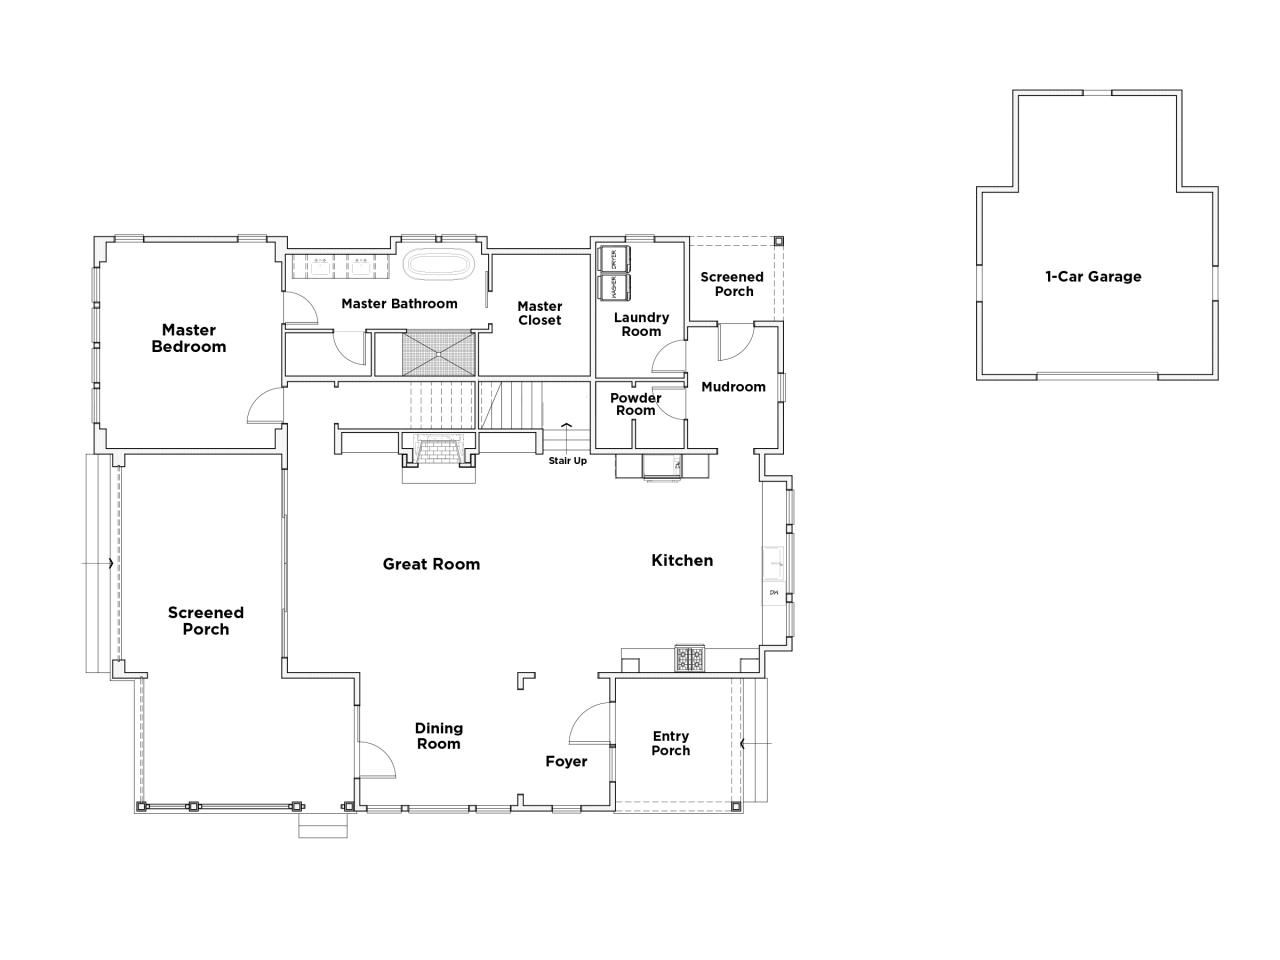 Discover The Floor Plan For Hgtv Smart Home 2018 Home Addition